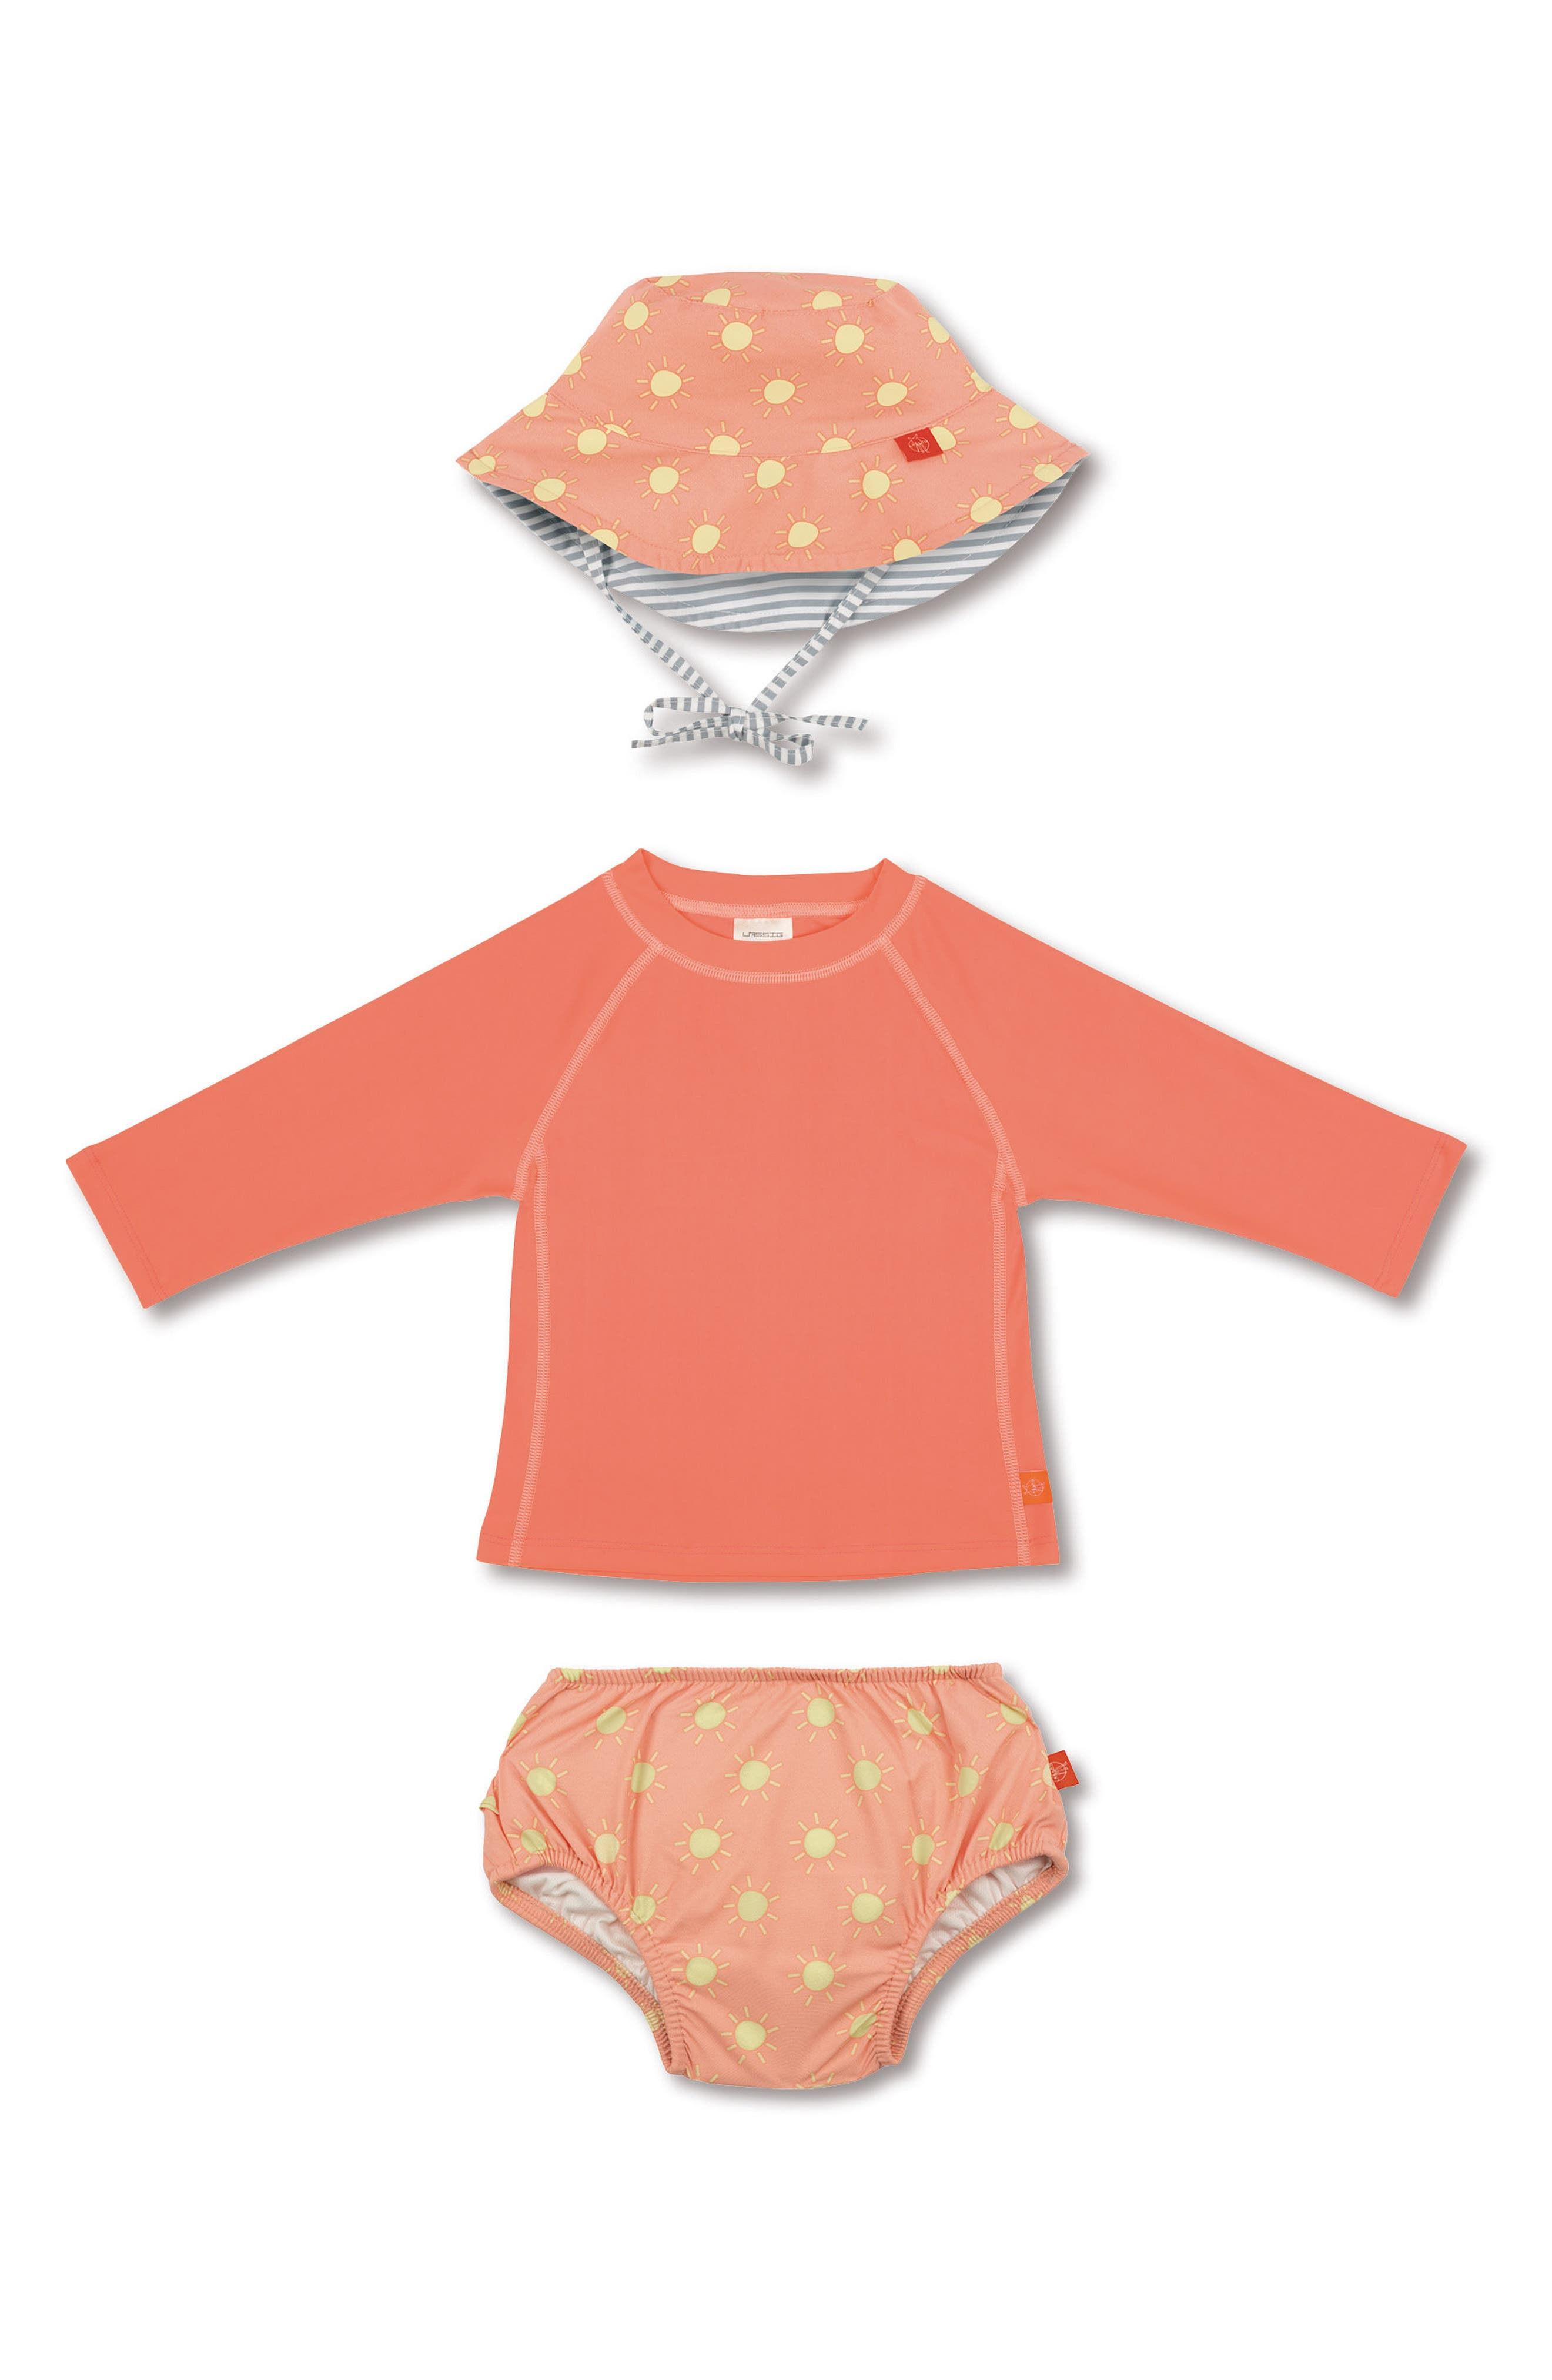 LÄSSIG Lassig Two-Piece Rashguard Swimsuit & Hat Set